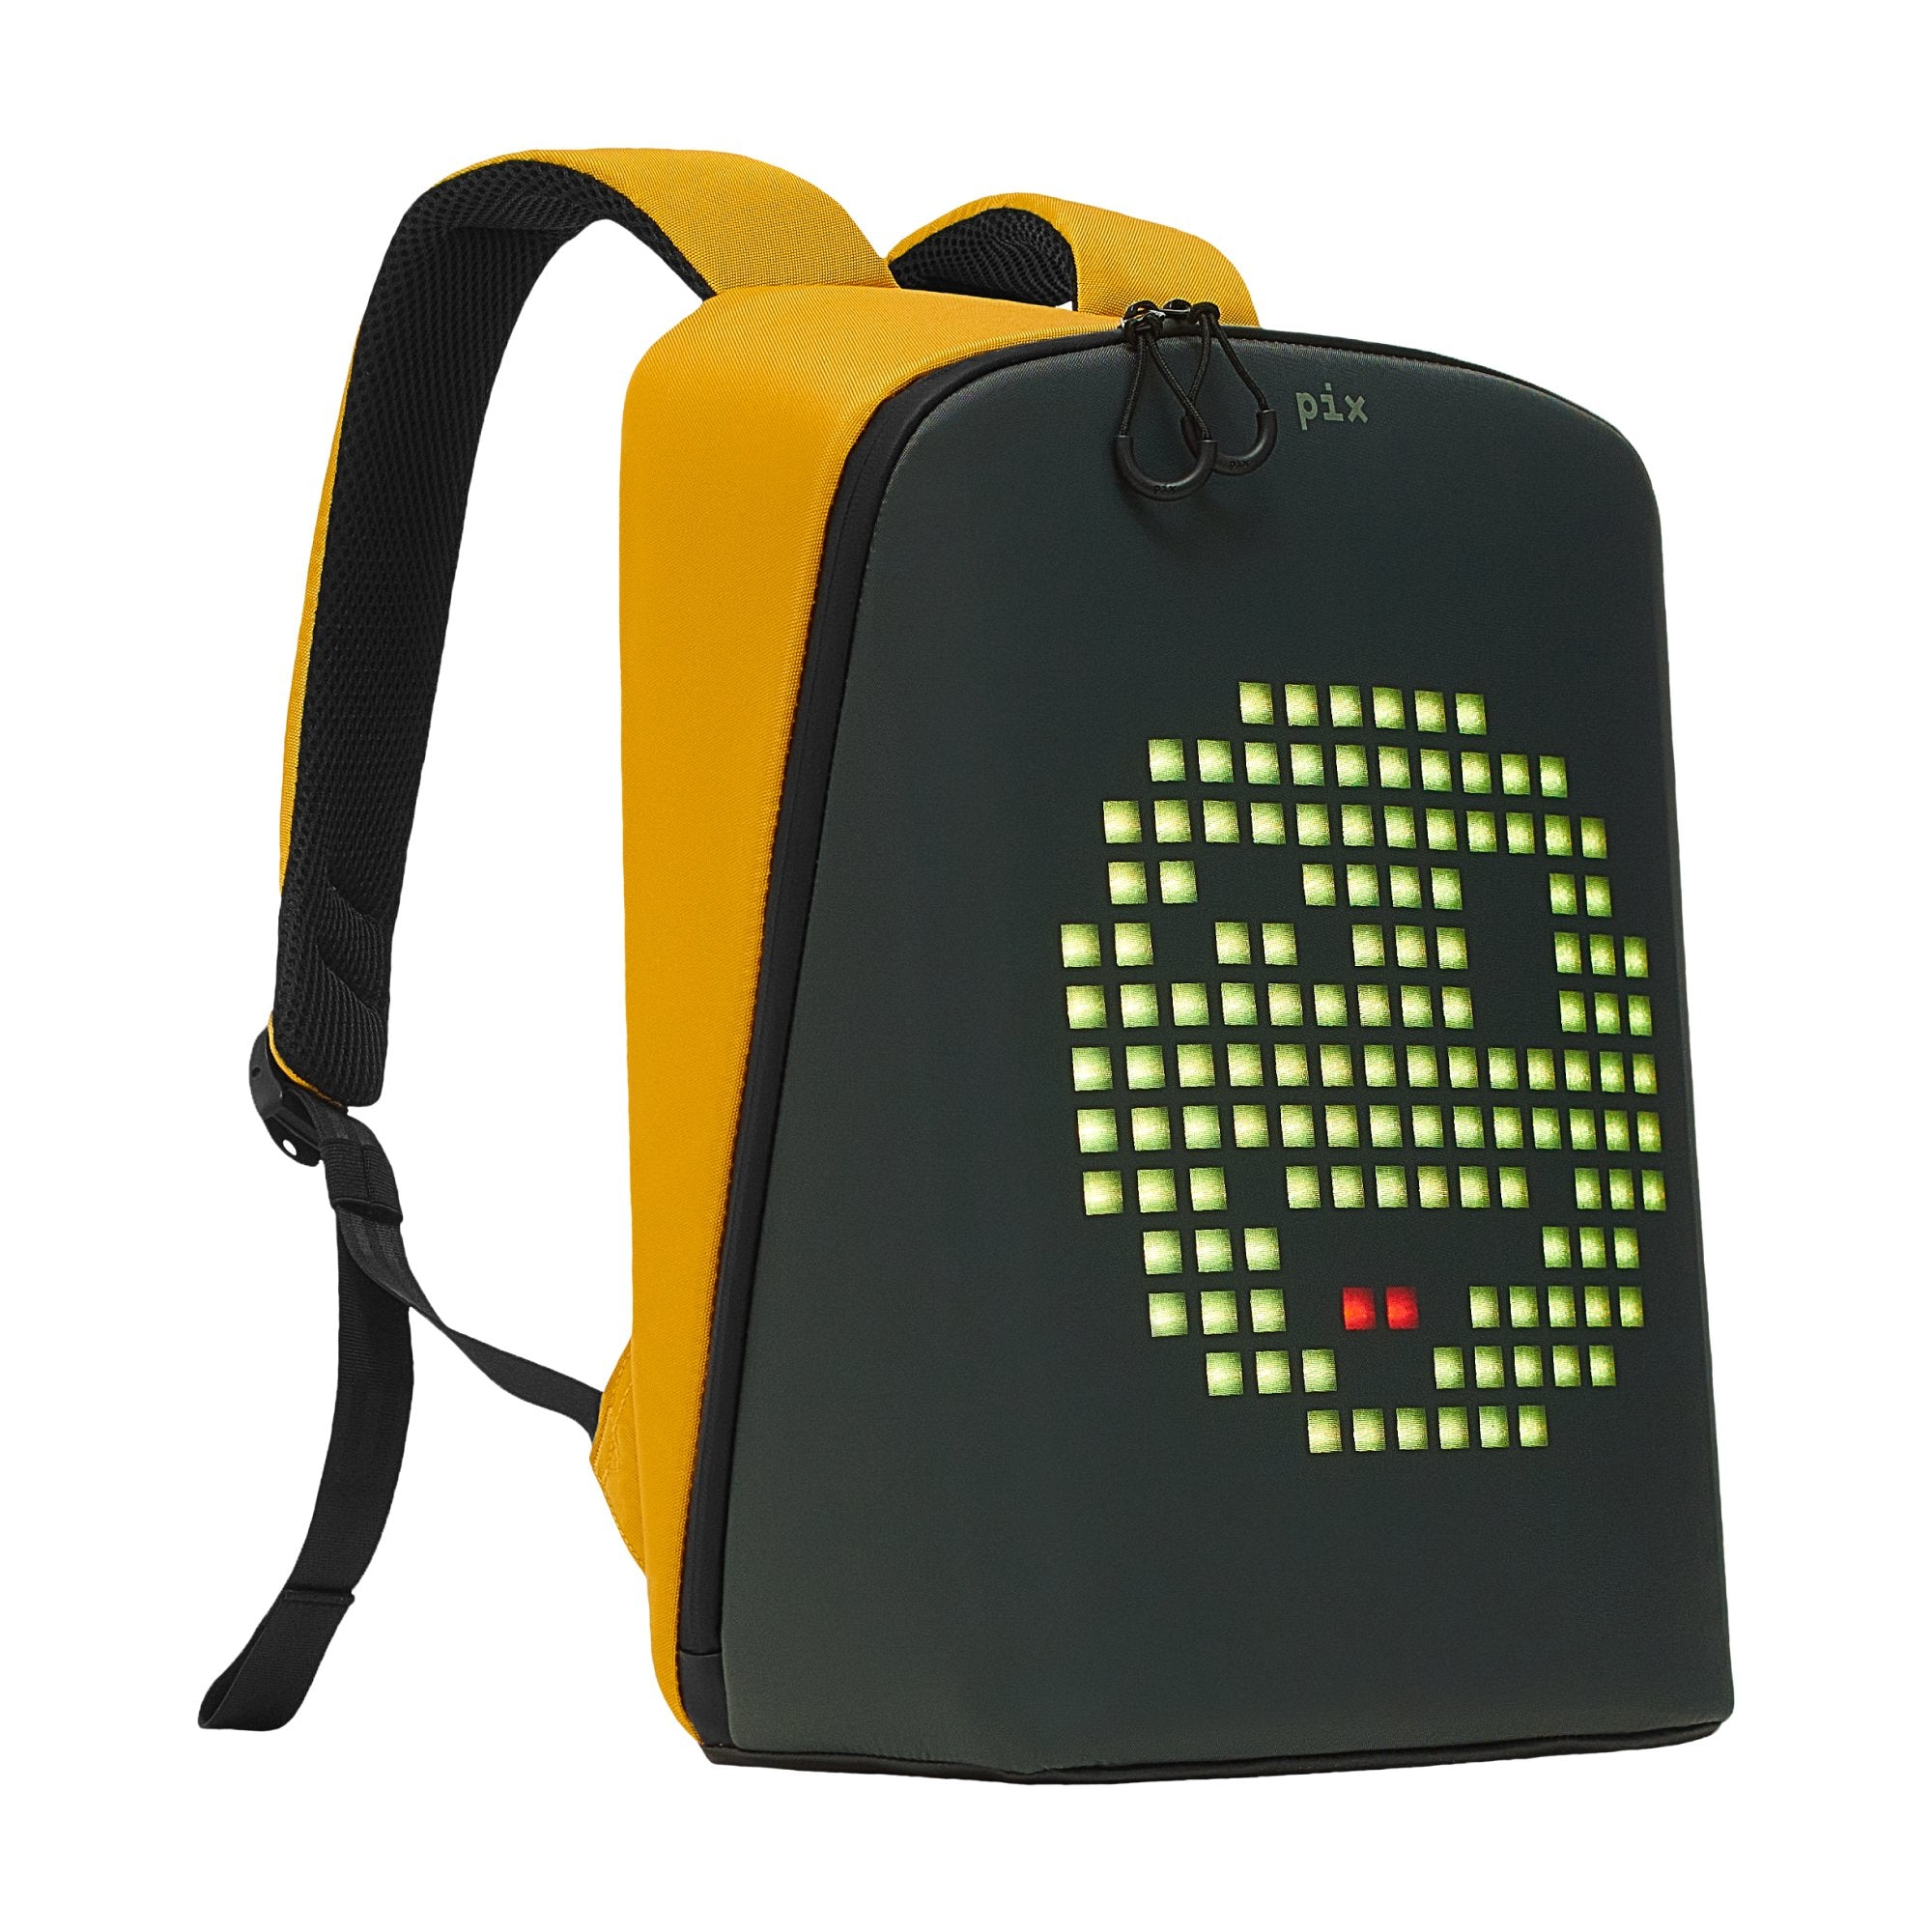 Pix Smart Backpack with Customizable LED Screen